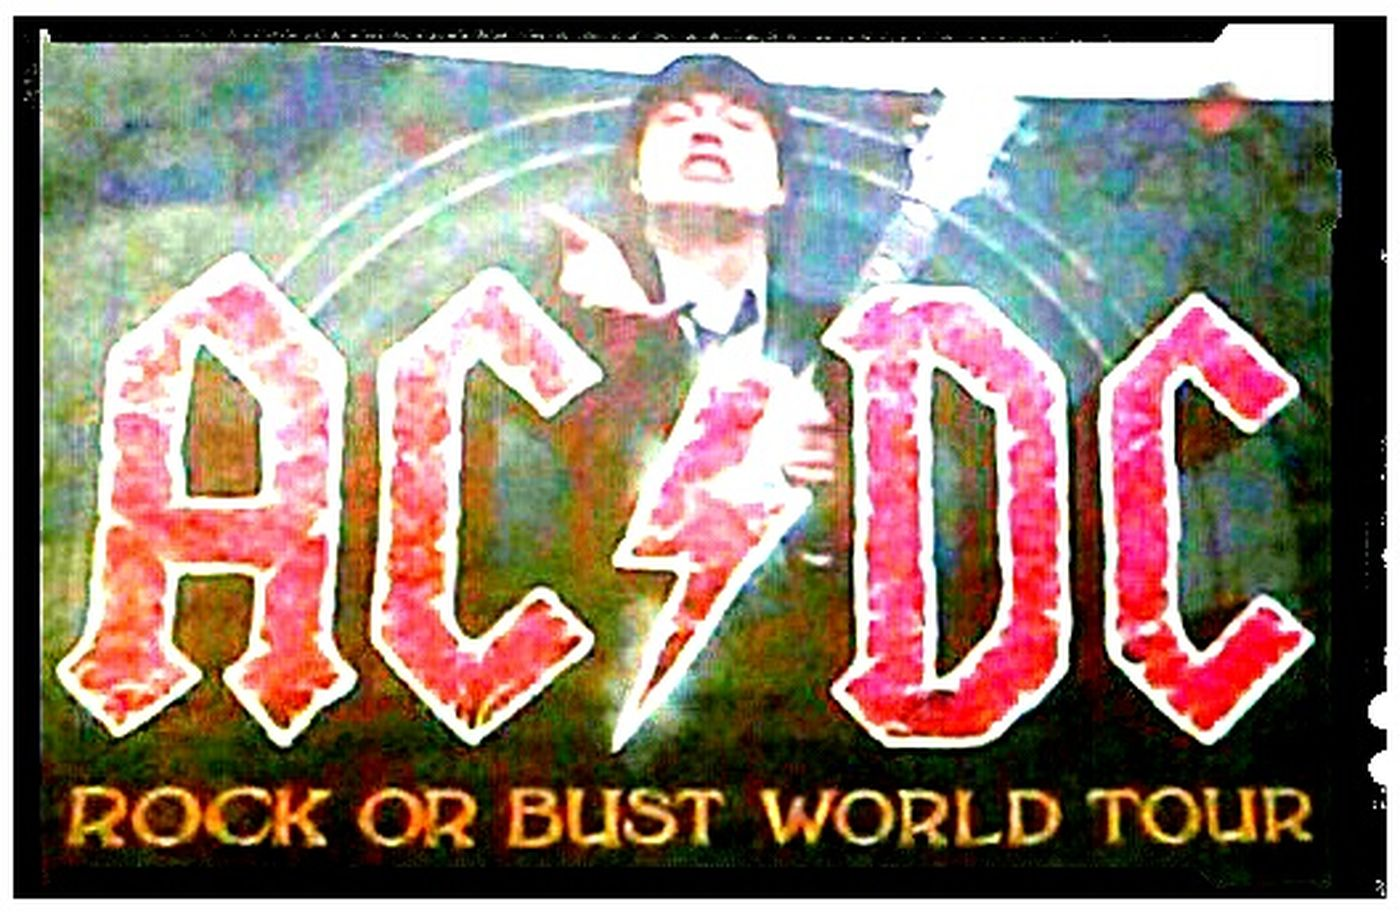 ACDC Rock'n'Roll Rock Music Banners Acca/dacca Ac Dc  Poster AC/DC AC~DC Banner World TourAustralia Rock Concert Posters Rock N Roll For Those About To Rock...we Salute You!!!  Rock N' Roll  Rock And Roll Rock'n Roll Rock & Roll Accadacca Postercollection Bandposters Band Posters Posterporn Poster Collection